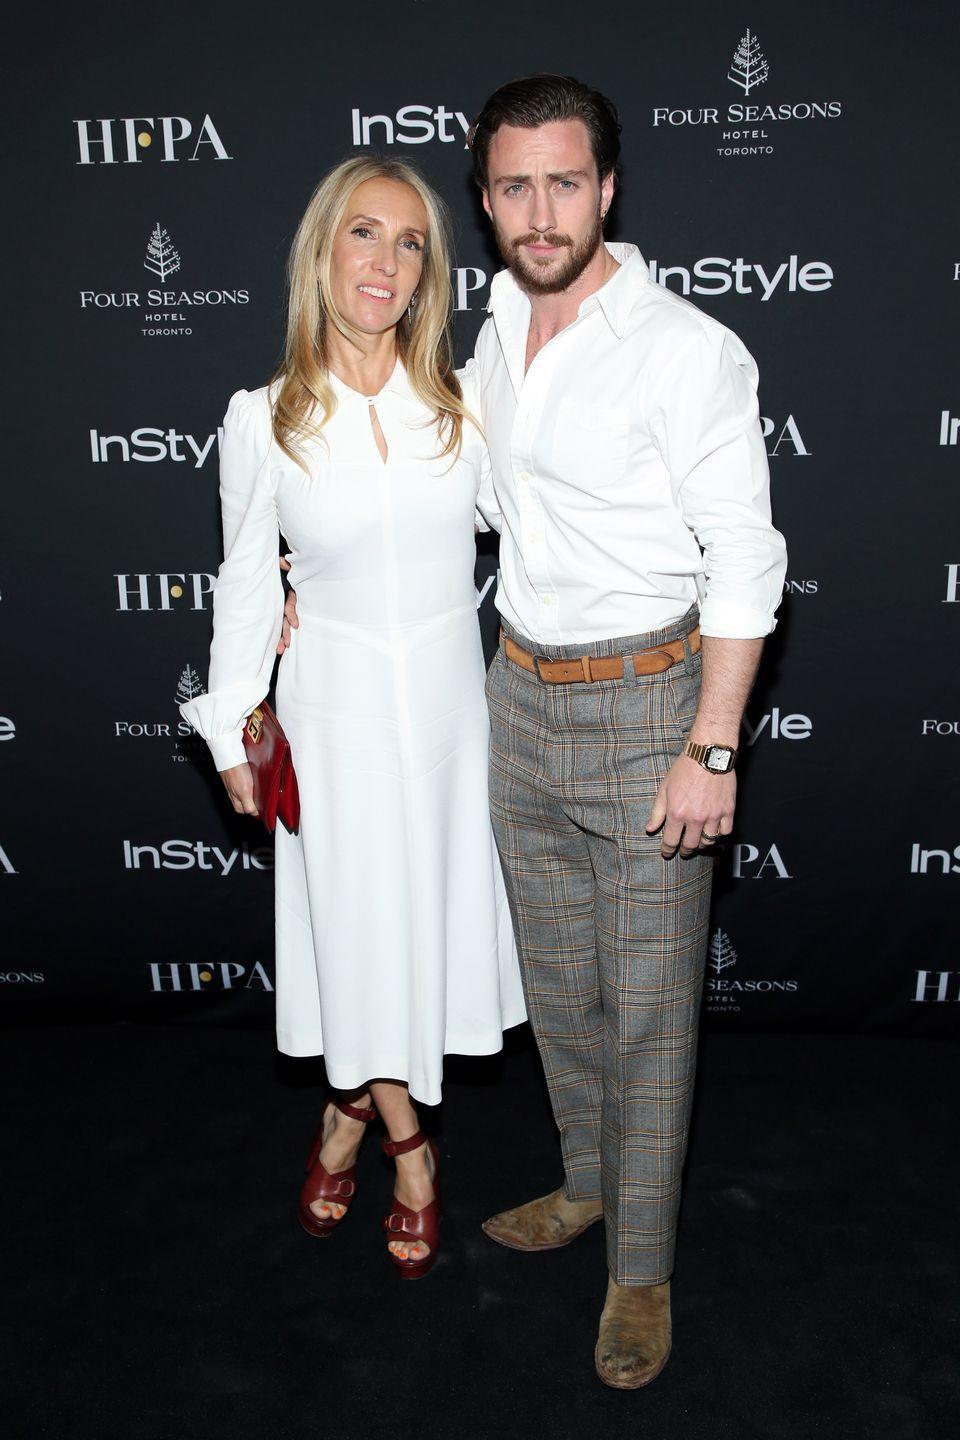 "<p>In 2009, Sam Taylor-Johnson announced her engagement to Aaron Taylor-Johnson, who's 23 years her junior. According to <a href=""http://www.dailymail.co.uk/tvshowbiz/article-2602579/Aaron-Taylor-Johnson-shrugs-23-year-age-gap-wife-Sam.html"" rel=""nofollow noopener"" target=""_blank"" data-ylk=""slk:The Daily Mail"" class=""link rapid-noclick-resp""><em>The Daily Mail</em></a>, the two met on the set of <em>Nowhere Boy</em>, where Sam was the director. Of the age gap, Aaron reportedly told <a href=""http://www.dailymail.co.uk/tvshowbiz/article-2602579/Aaron-Taylor-Johnson-shrugs-23-year-age-gap-wife-Sam.html"" rel=""nofollow noopener"" target=""_blank"" data-ylk=""slk:Men's Health"" class=""link rapid-noclick-resp""><em>Men's Health</em></a> in a 2014 interview: ""She's such a young, beautiful soul that you wouldn't even know.""</p>"